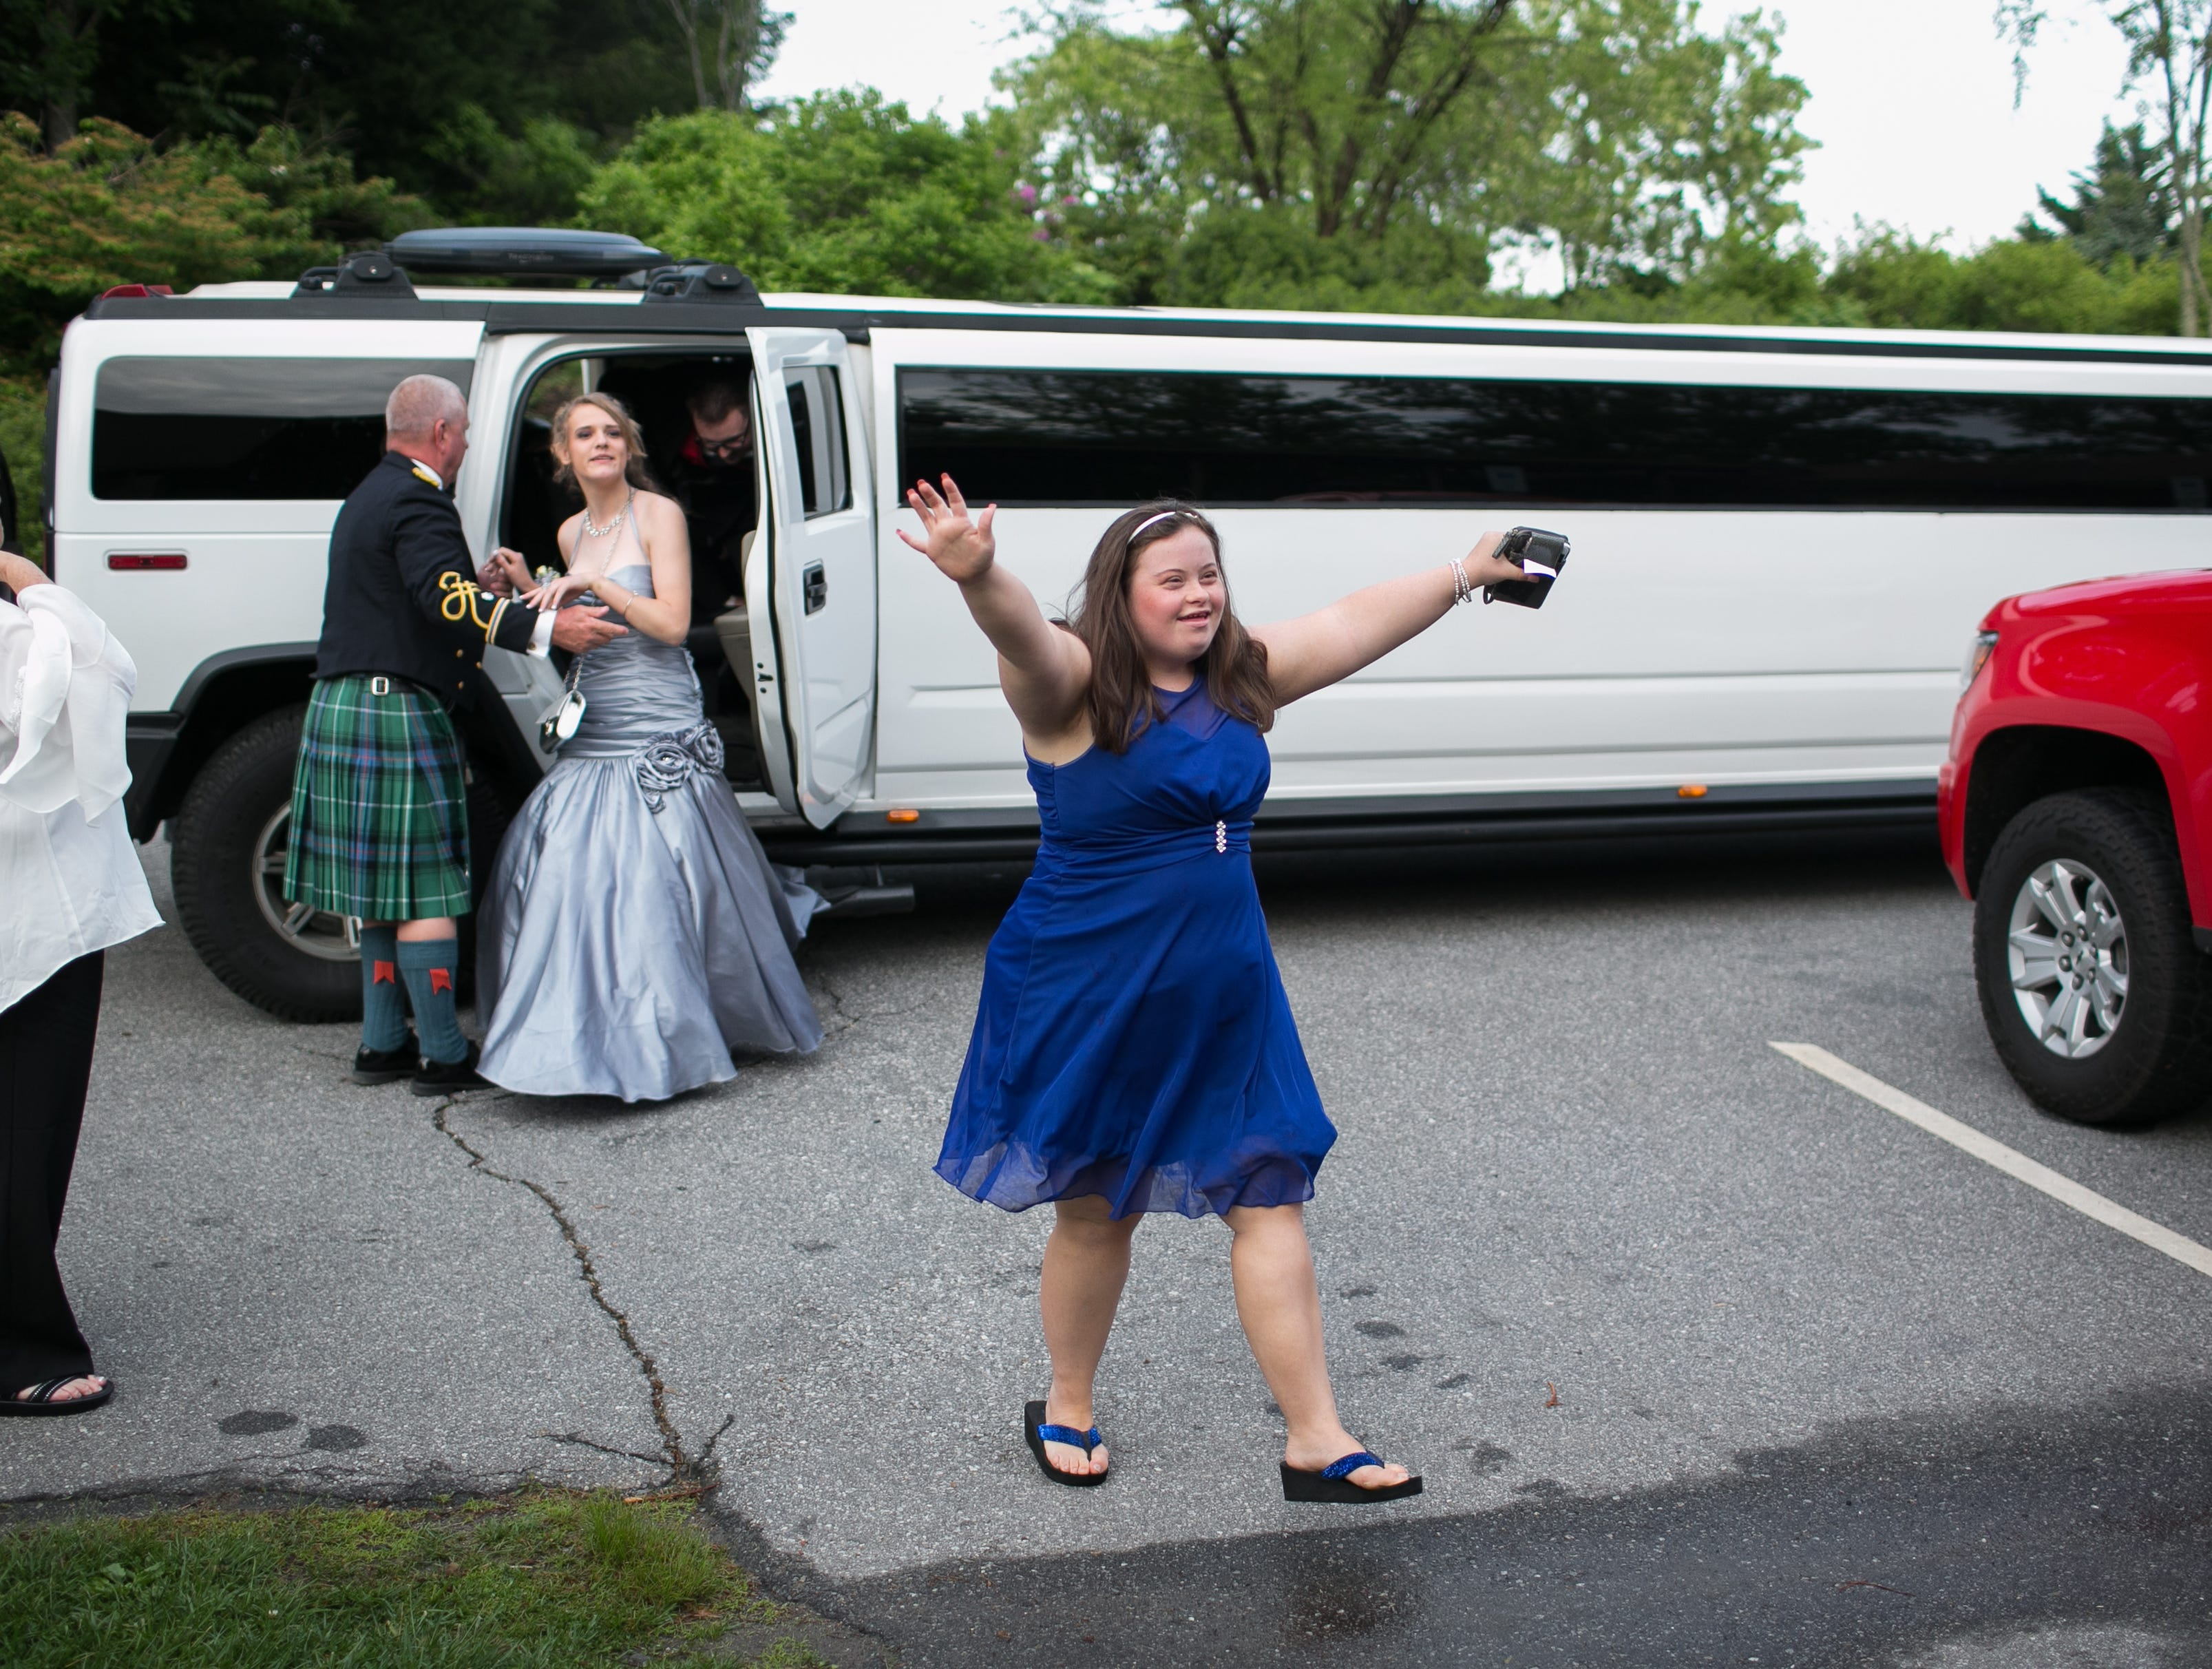 Former Madison student Anne Graves was welcomed to the prom. Madison students raised money for past and current EC students to attend this year's prom.  Madison celebrated their prom on May 4, 2019, at the Crest Center Pavilion.